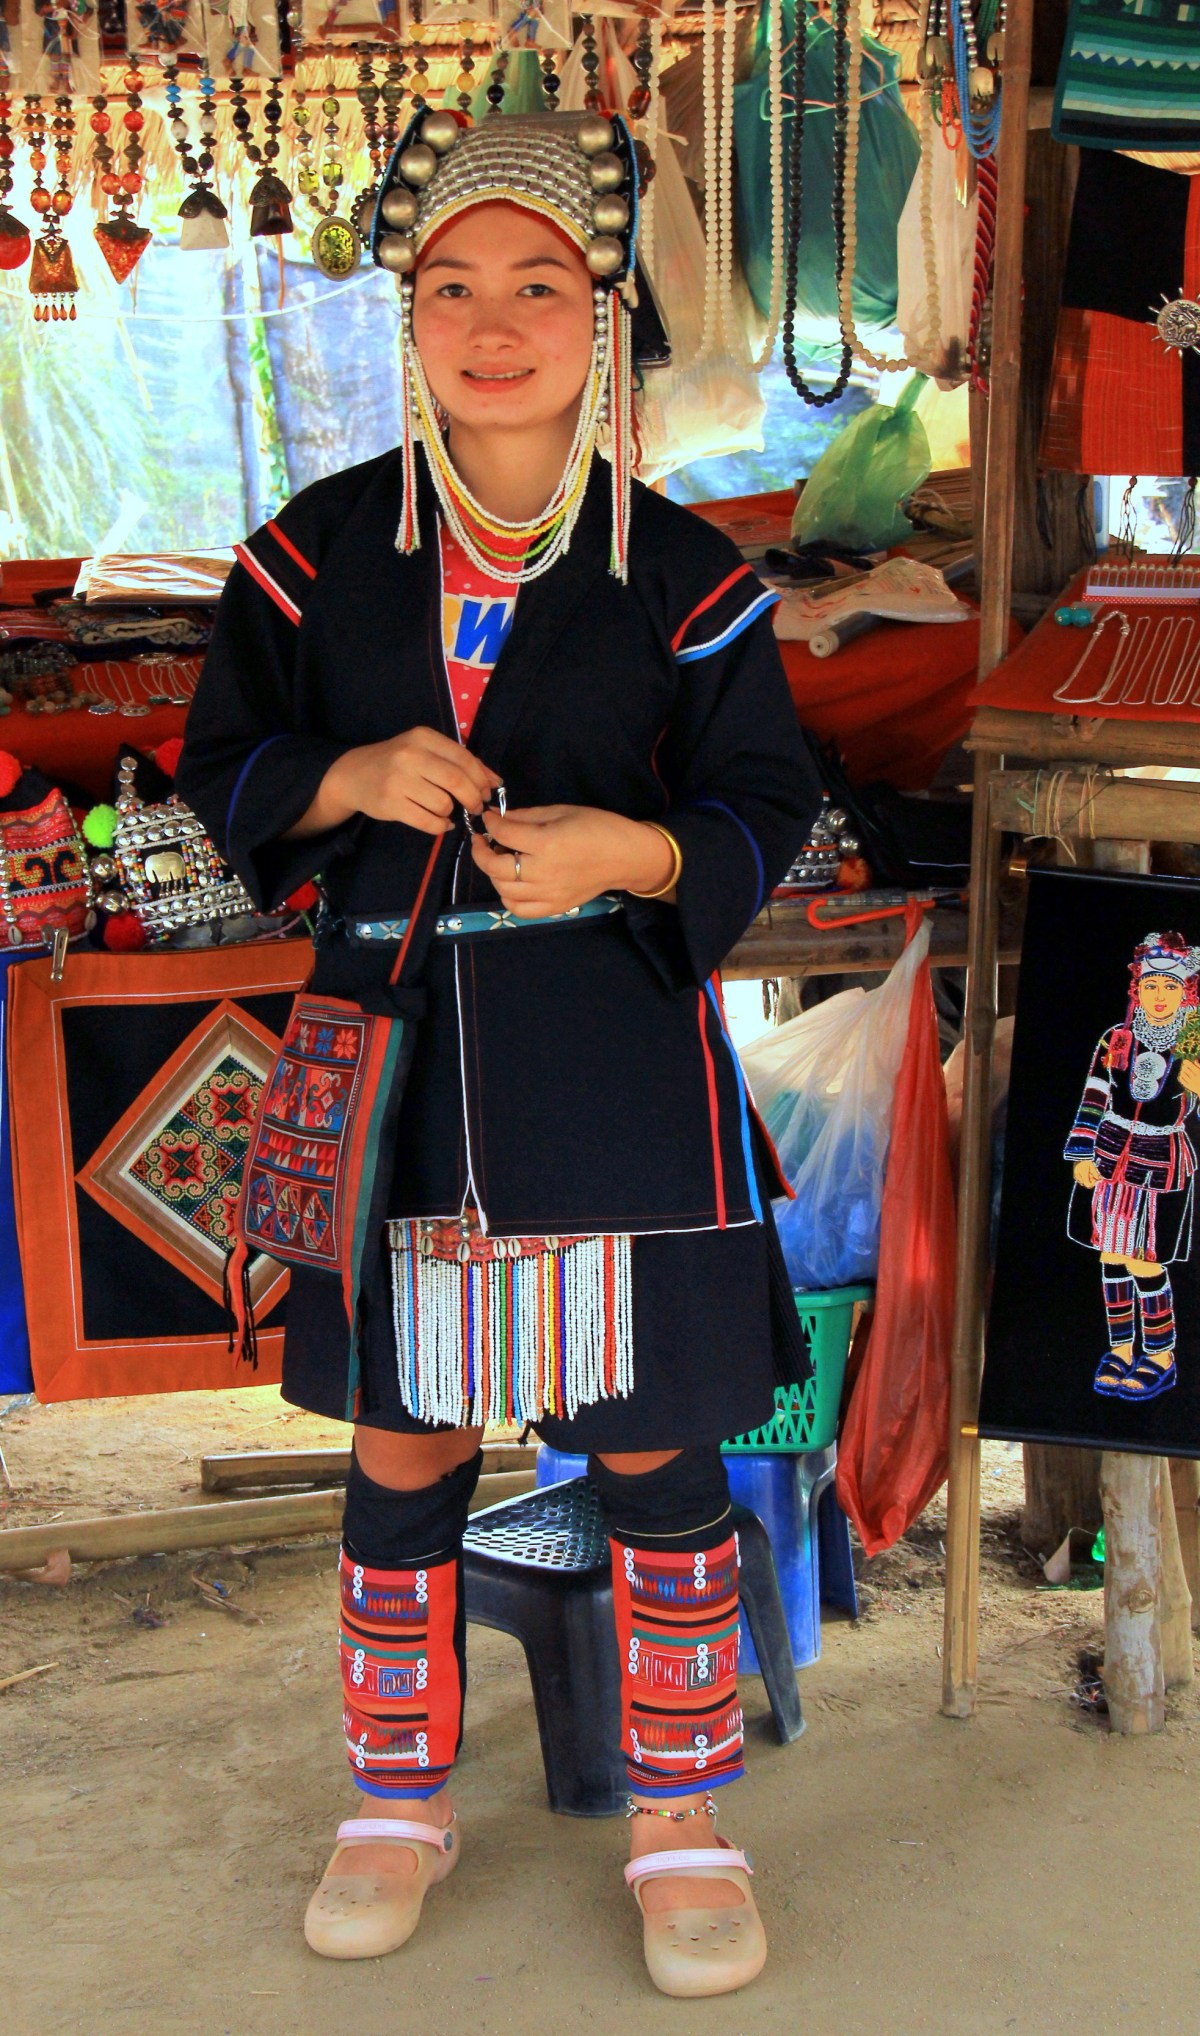 Many Thai hill tribes tours lack authenticity